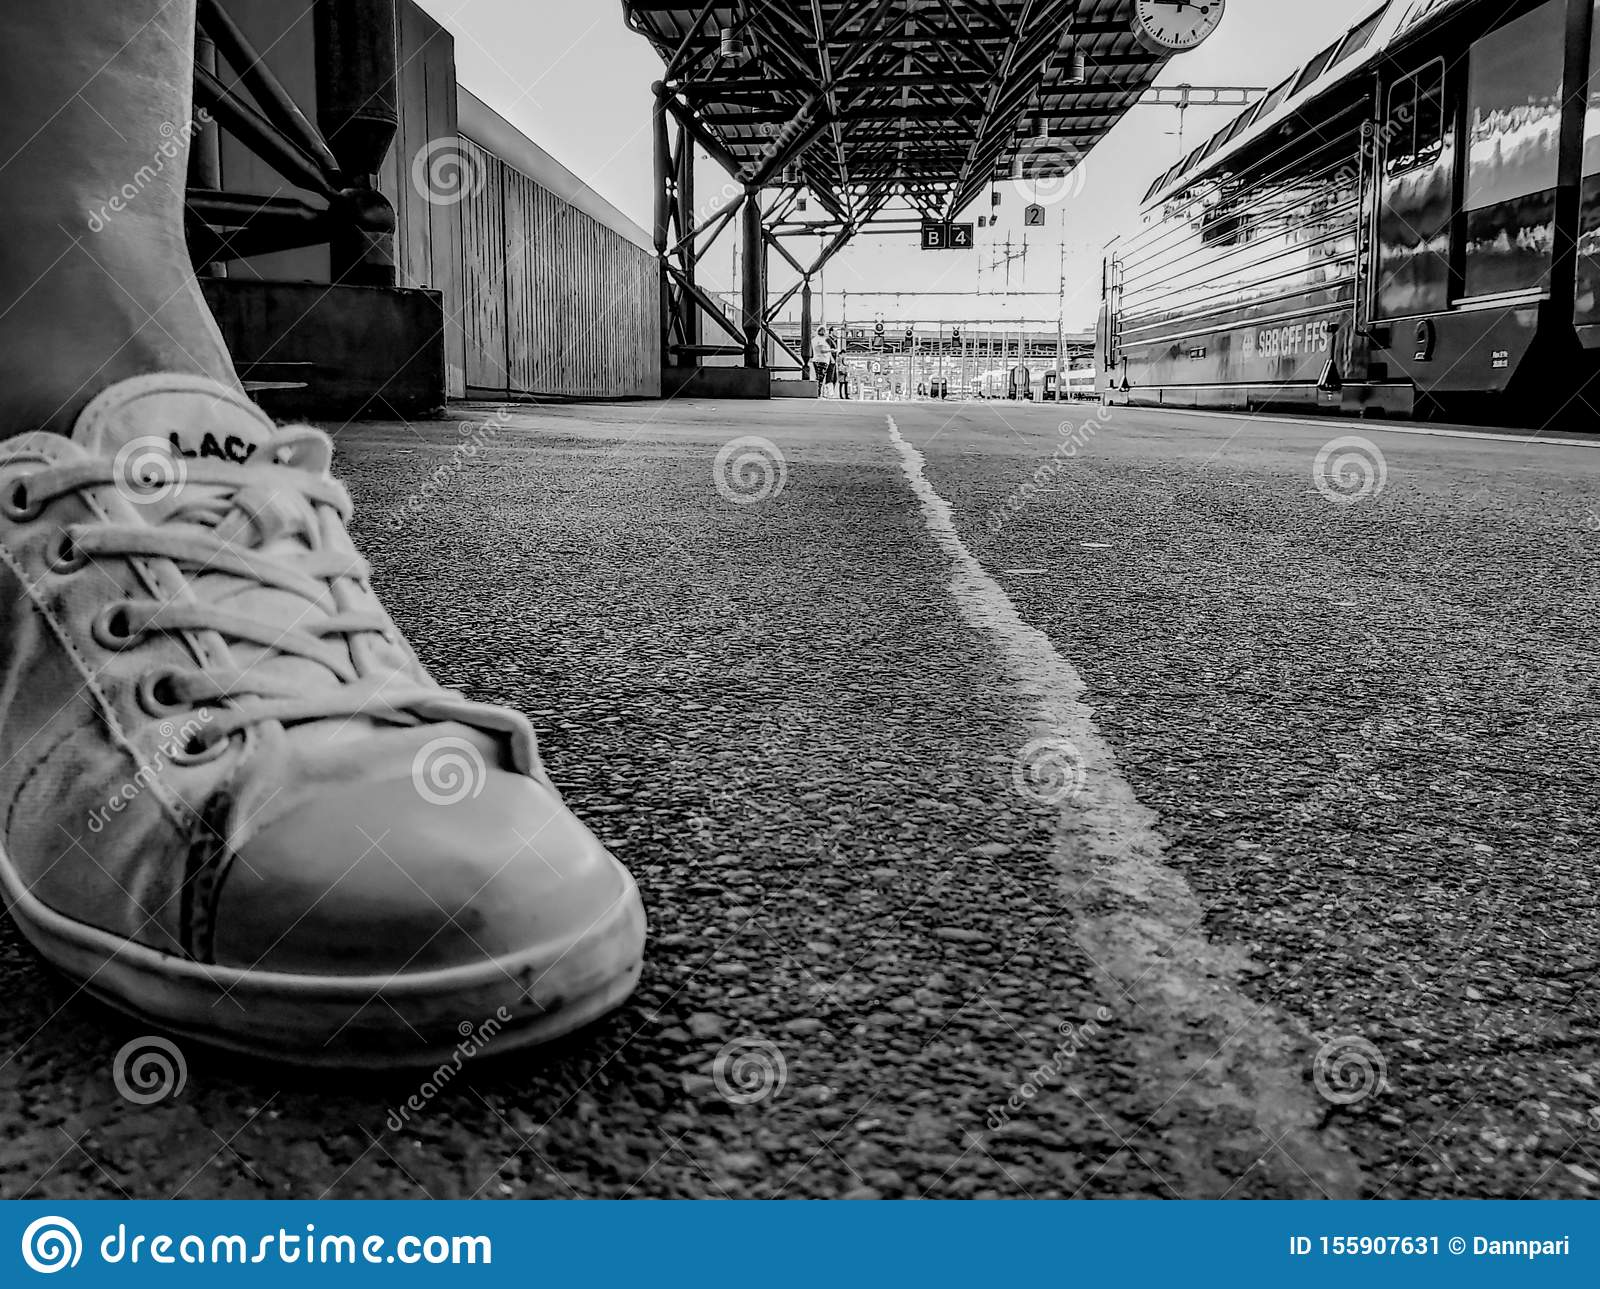 Sneakers on train station in black and white